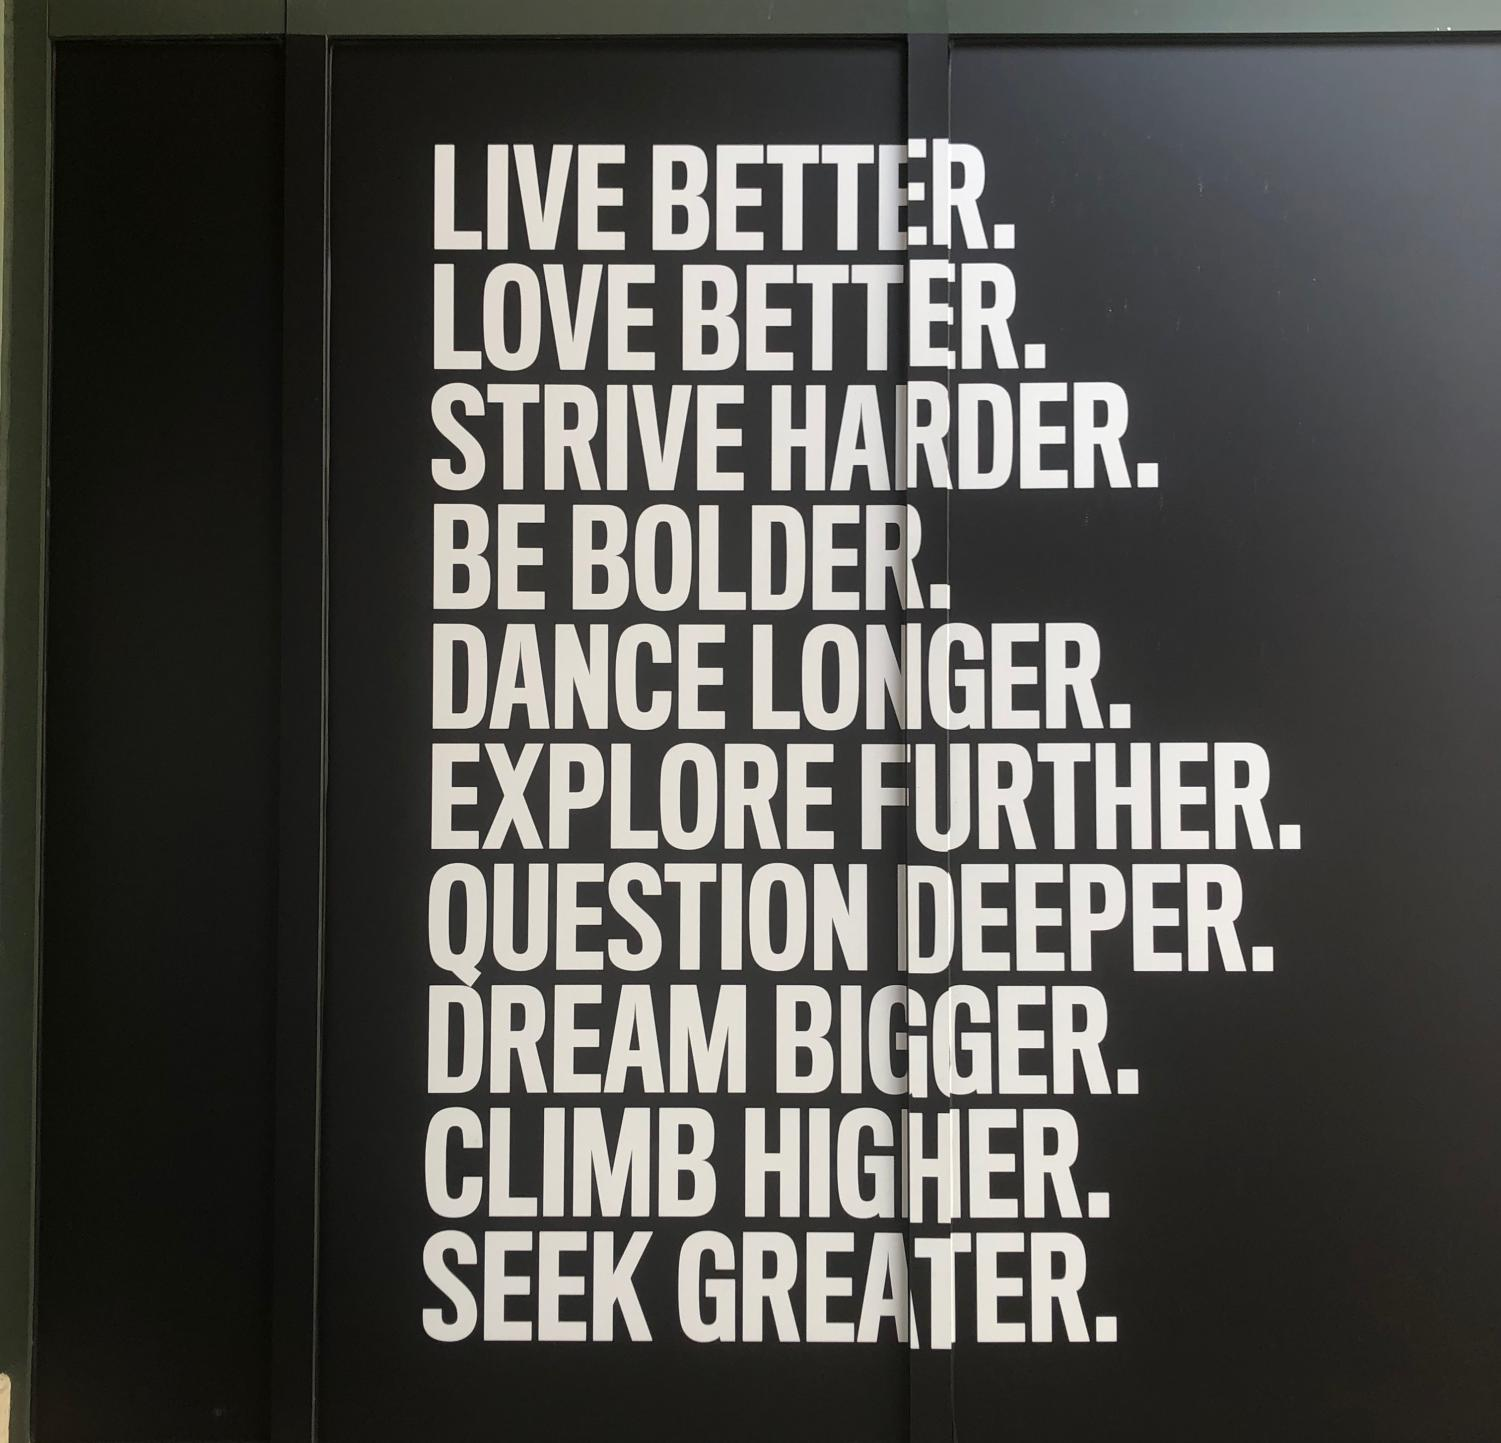 Equinox's exterior walls at Merrick Park display motivational quotes related to success, goal-setting and achievement.